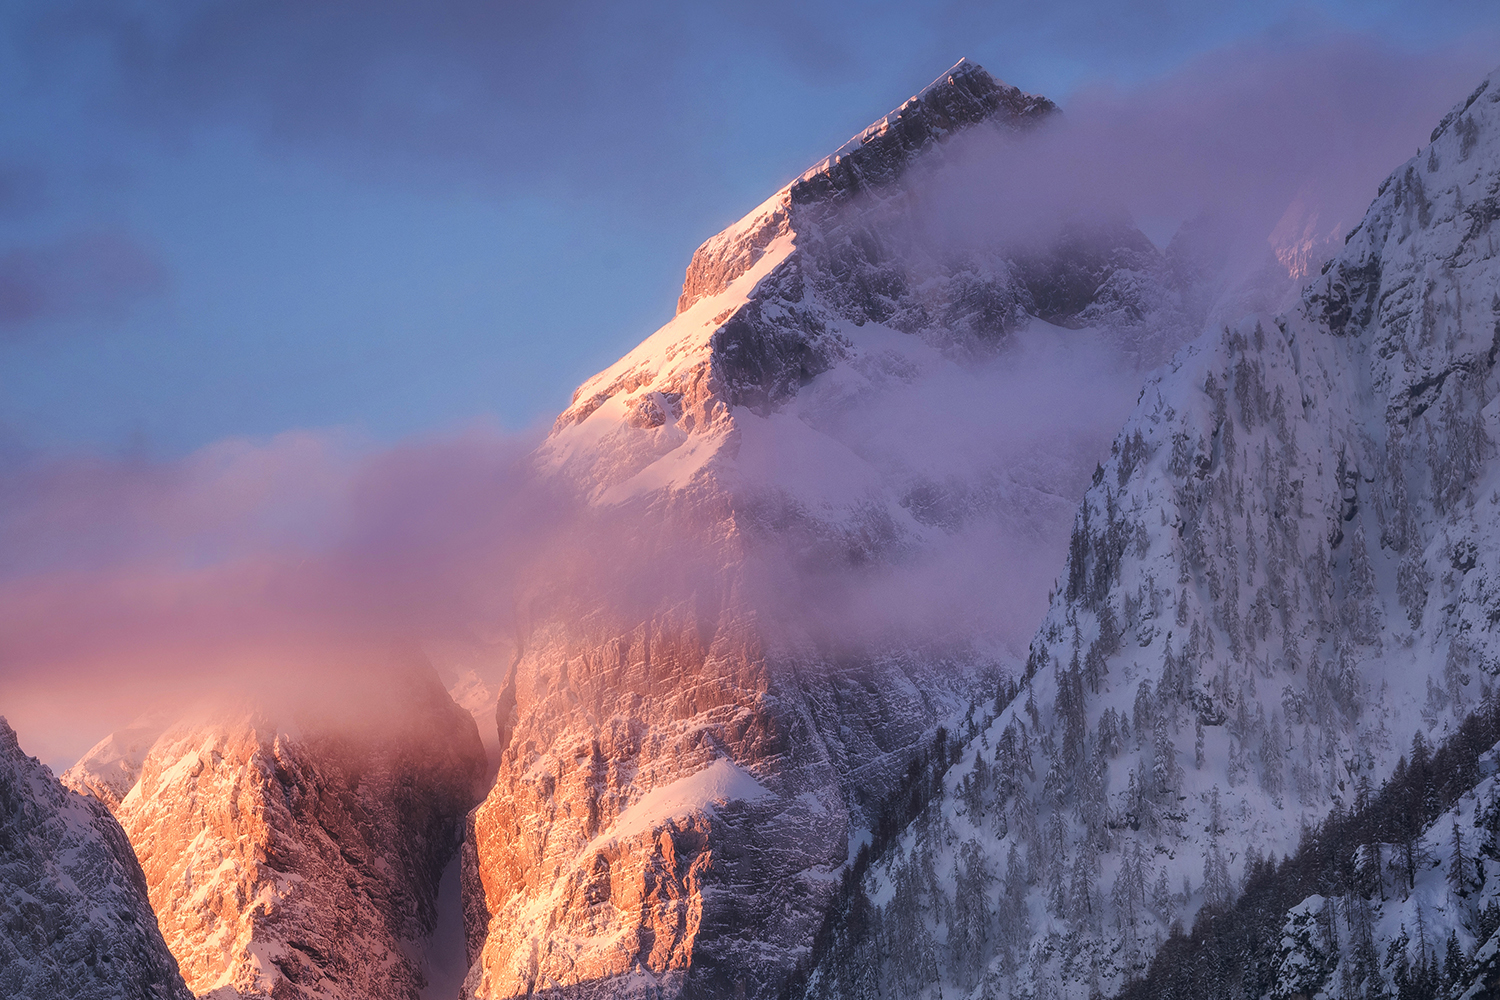 Sunrise in the mountains covered wiht snow example image 1